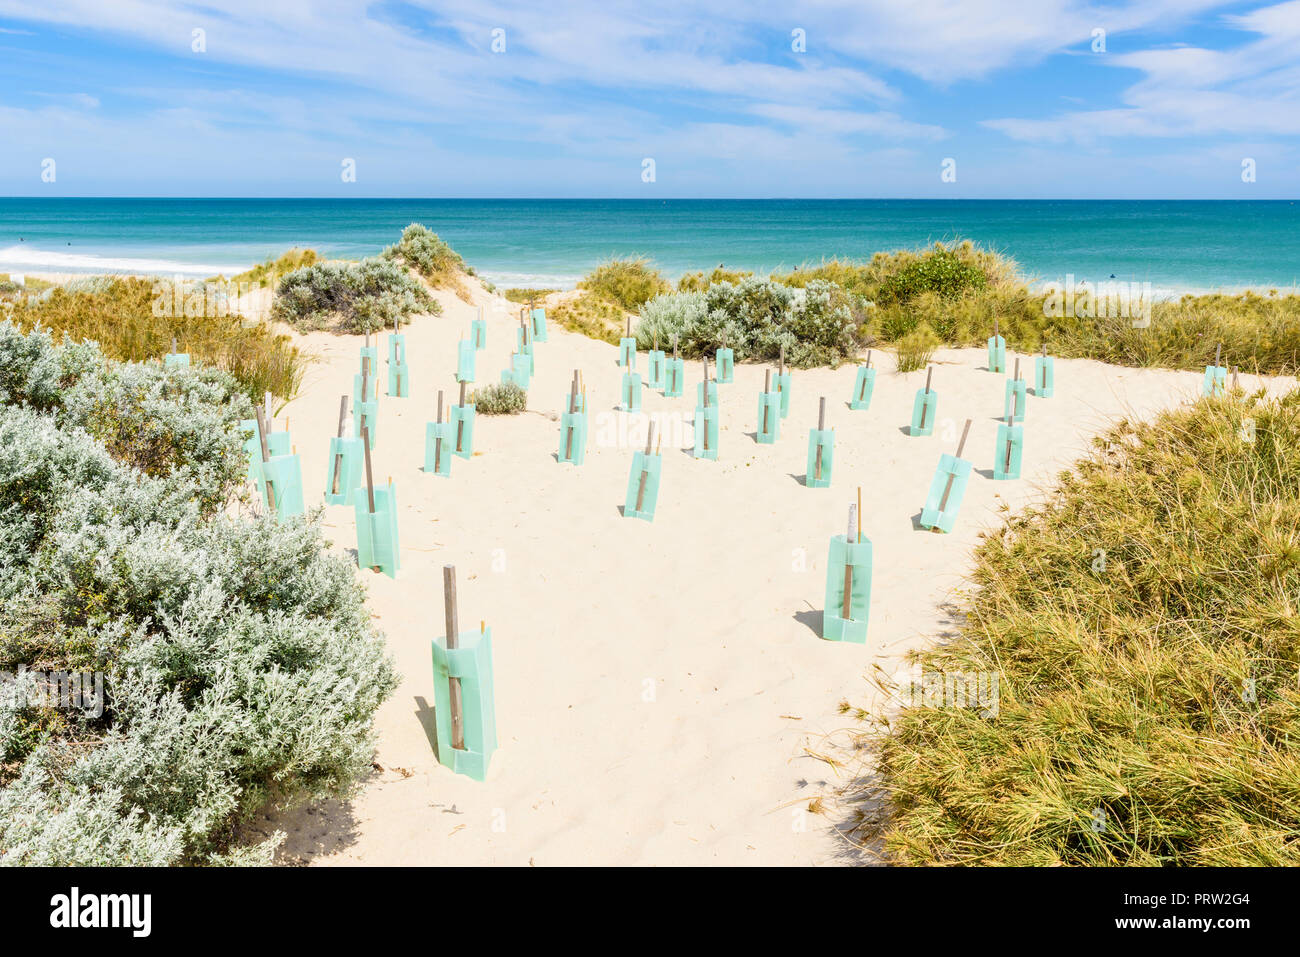 Ongoing dune stabilisation by protecting new plants using plastic tree shelters in a coastal ecosystem in Western Australia - Stock Image